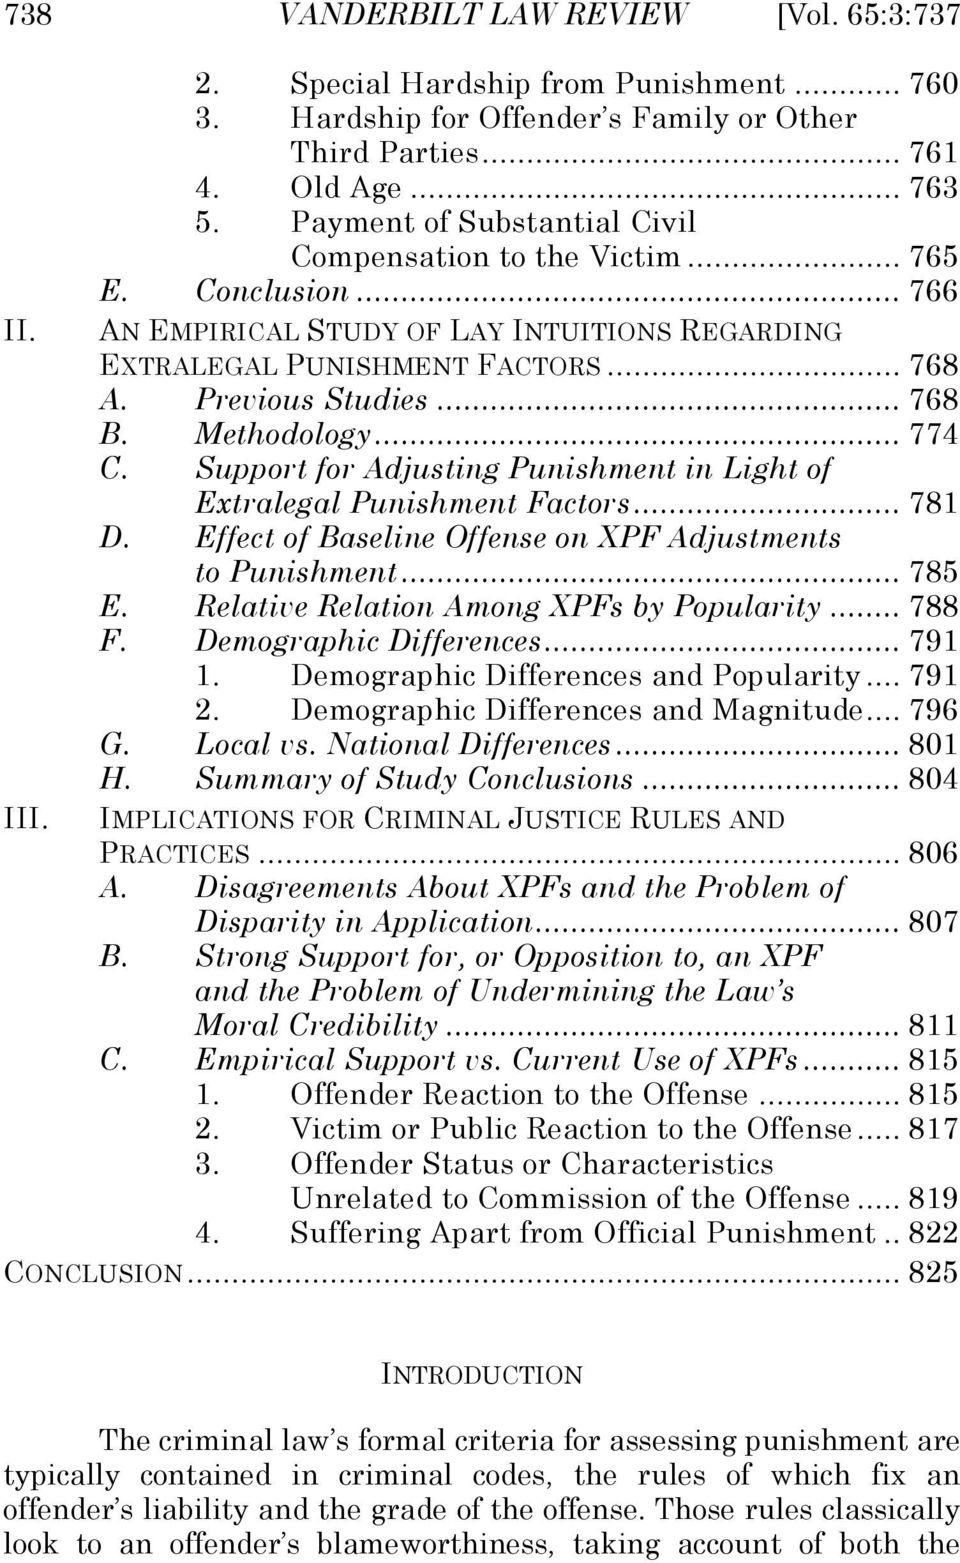 Methodology... 774 C. Support for Adjusting Punishment in Light of Extralegal Punishment Factors... 781 D. Effect of Baseline Offense on XPF Adjustments to Punishment... 785 E.